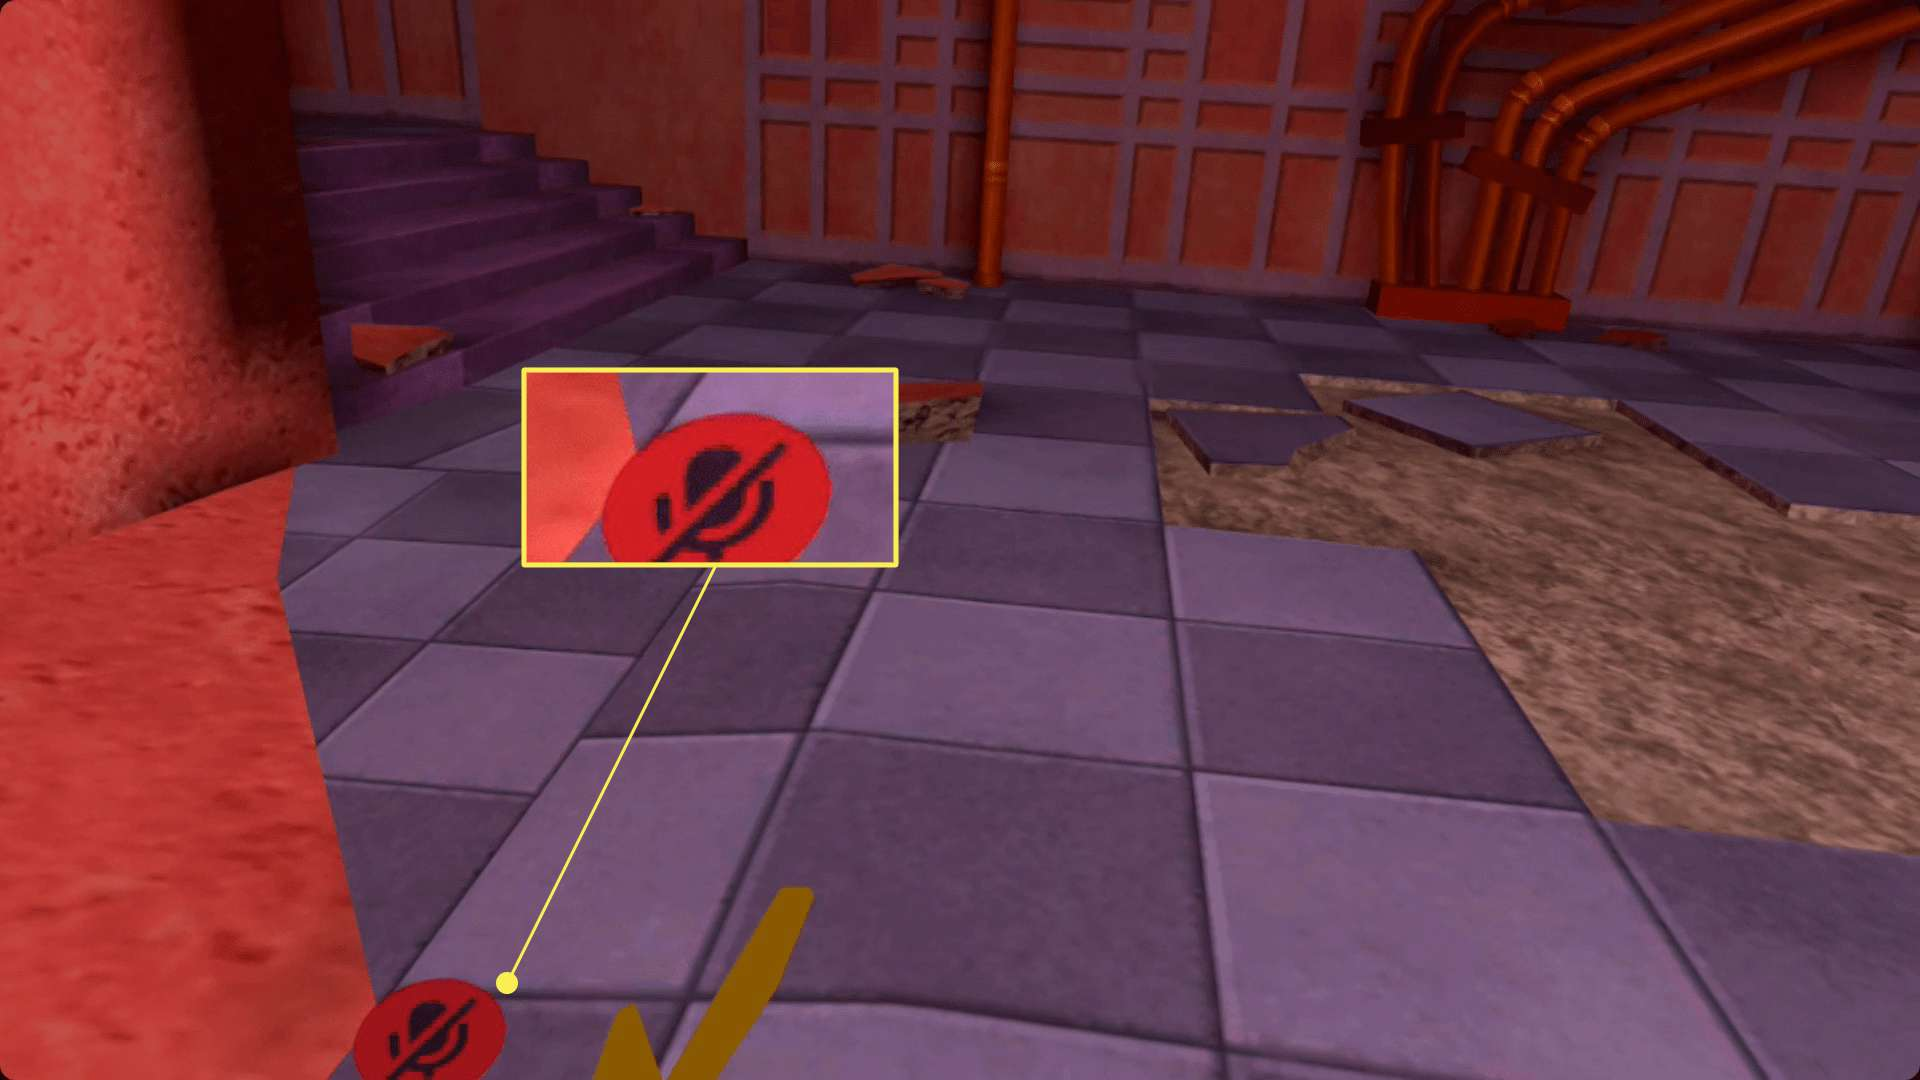 VRChat on Quest with the mute icon showing.